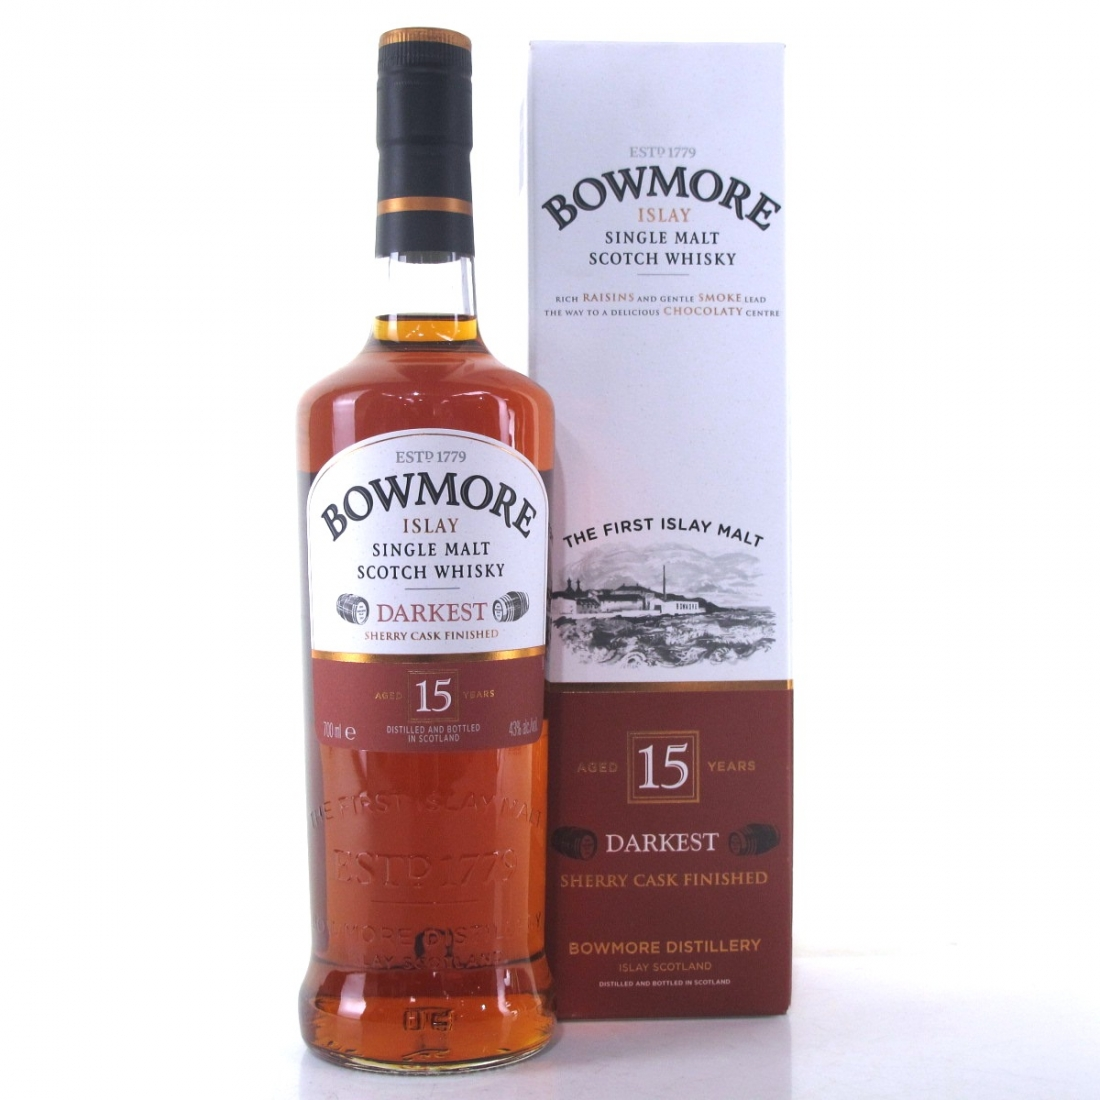 Bowmore 15 Year Old Darkest